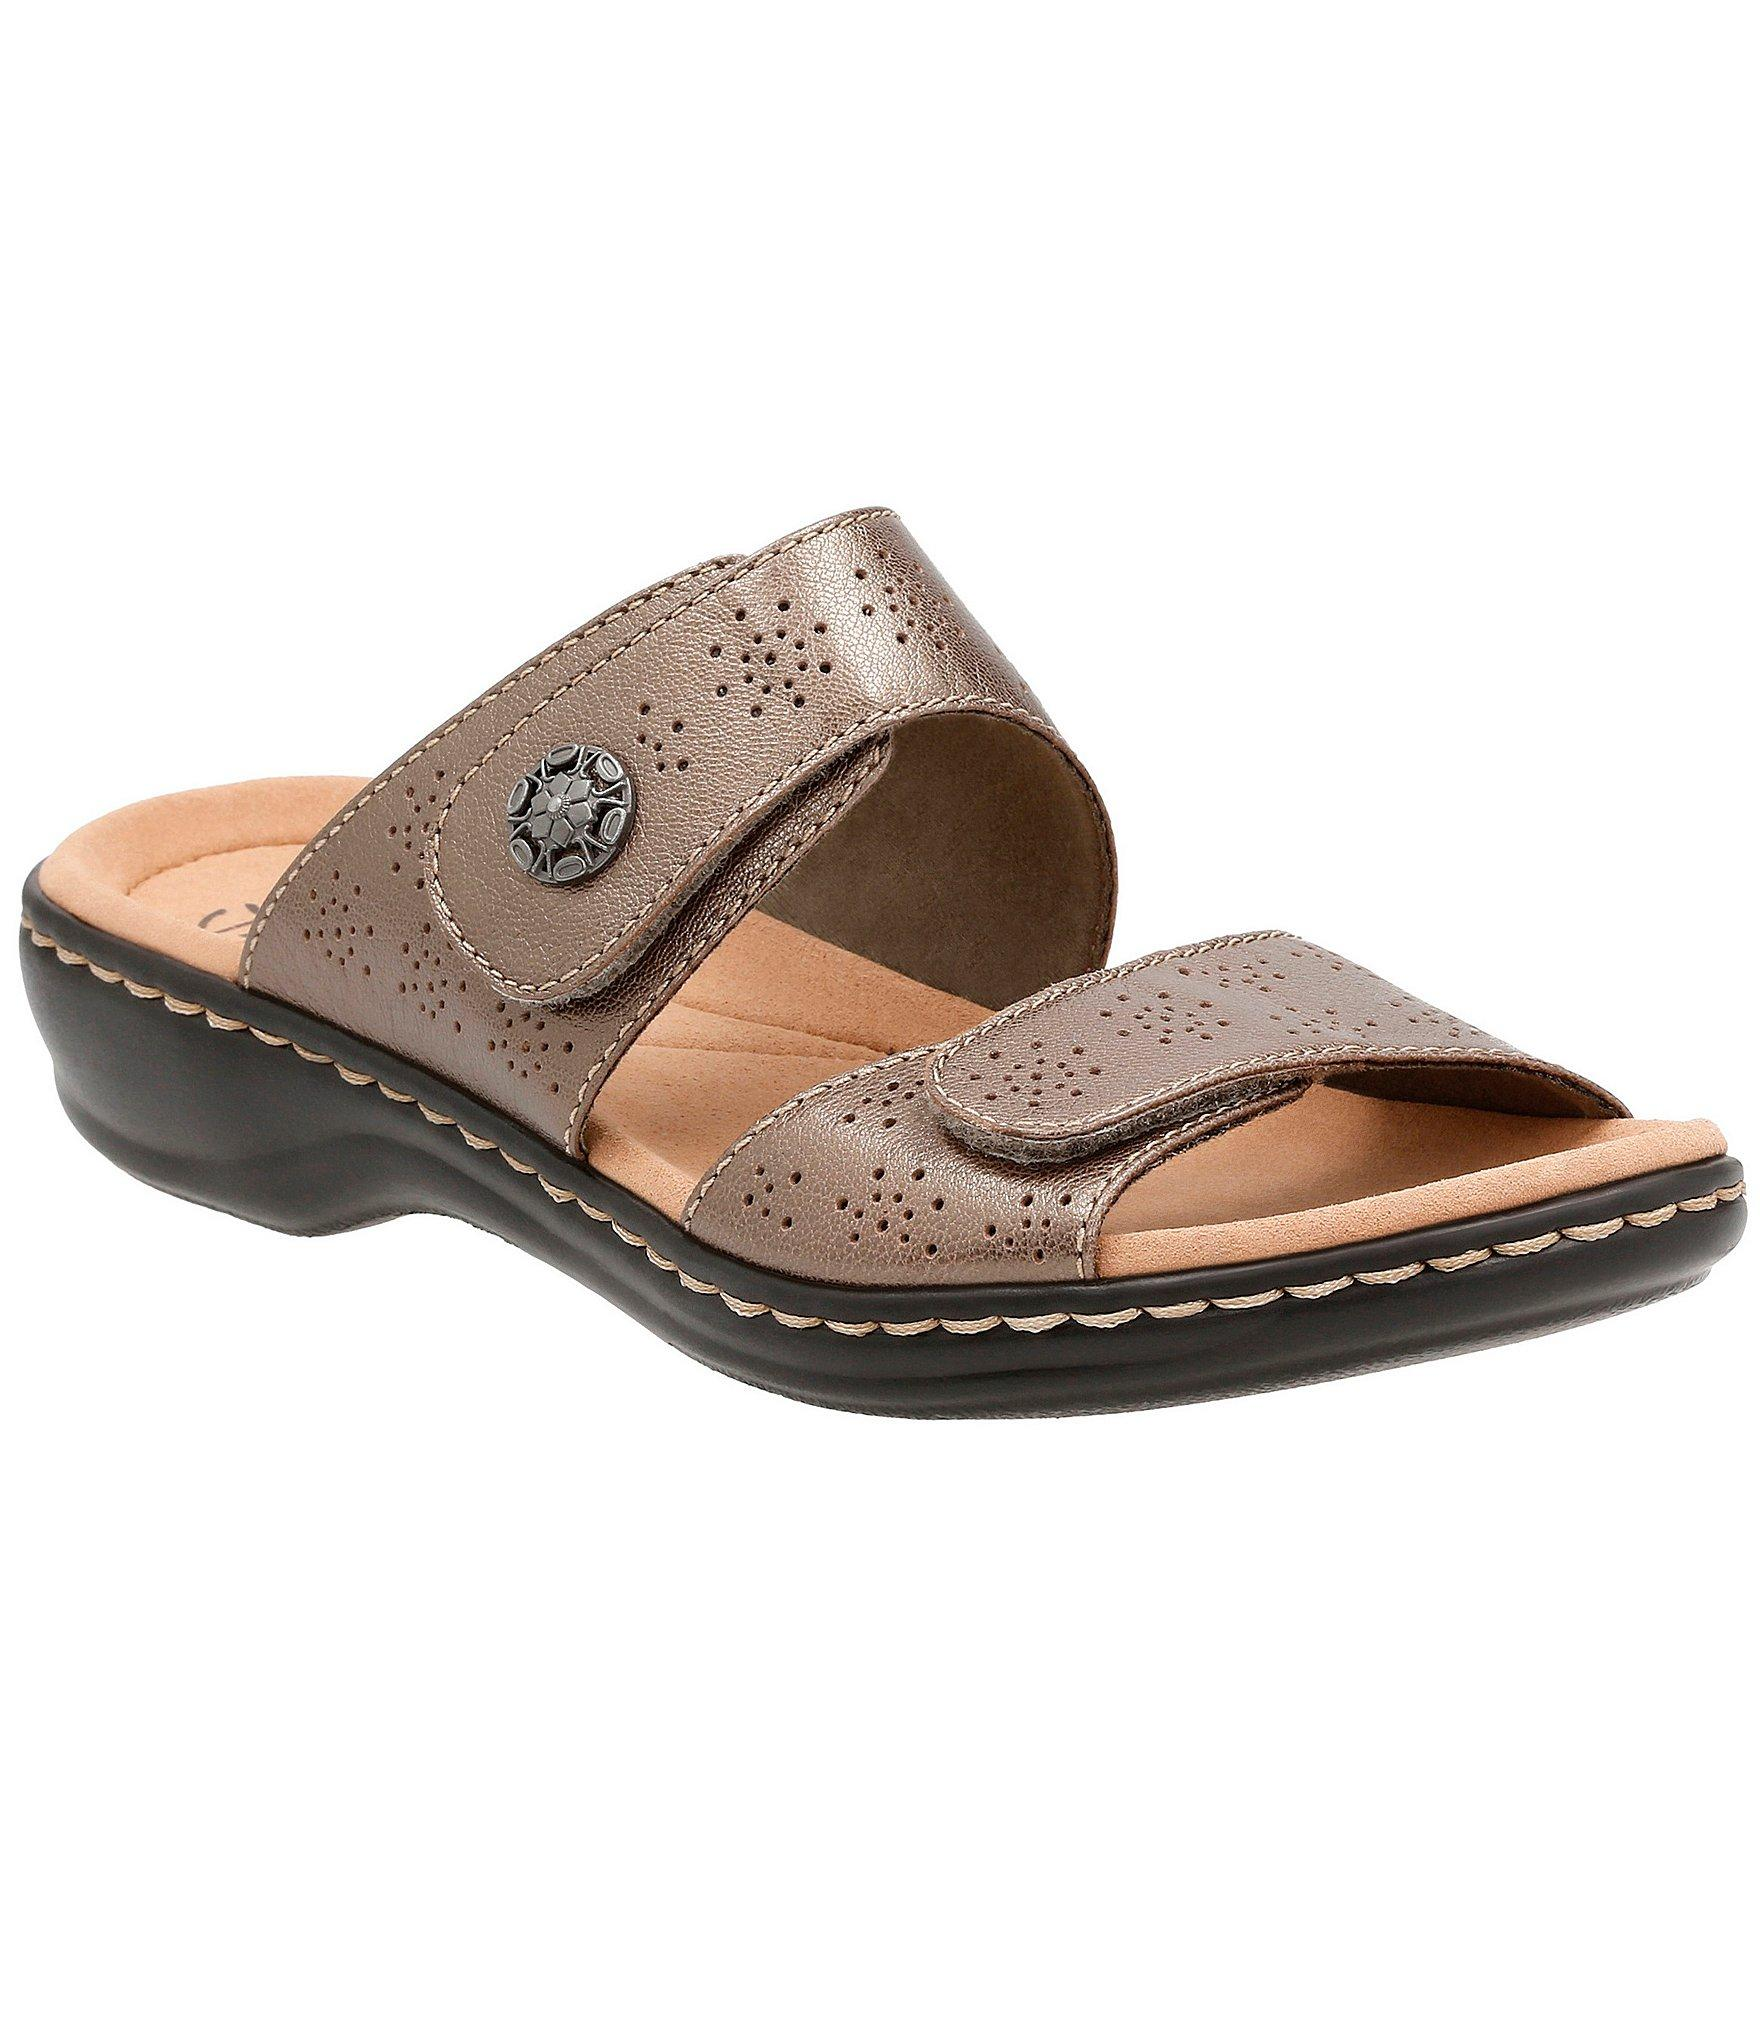 c400d76dbfc Lyst - Clarks Leisa Lacole Perforated Slide Sandals